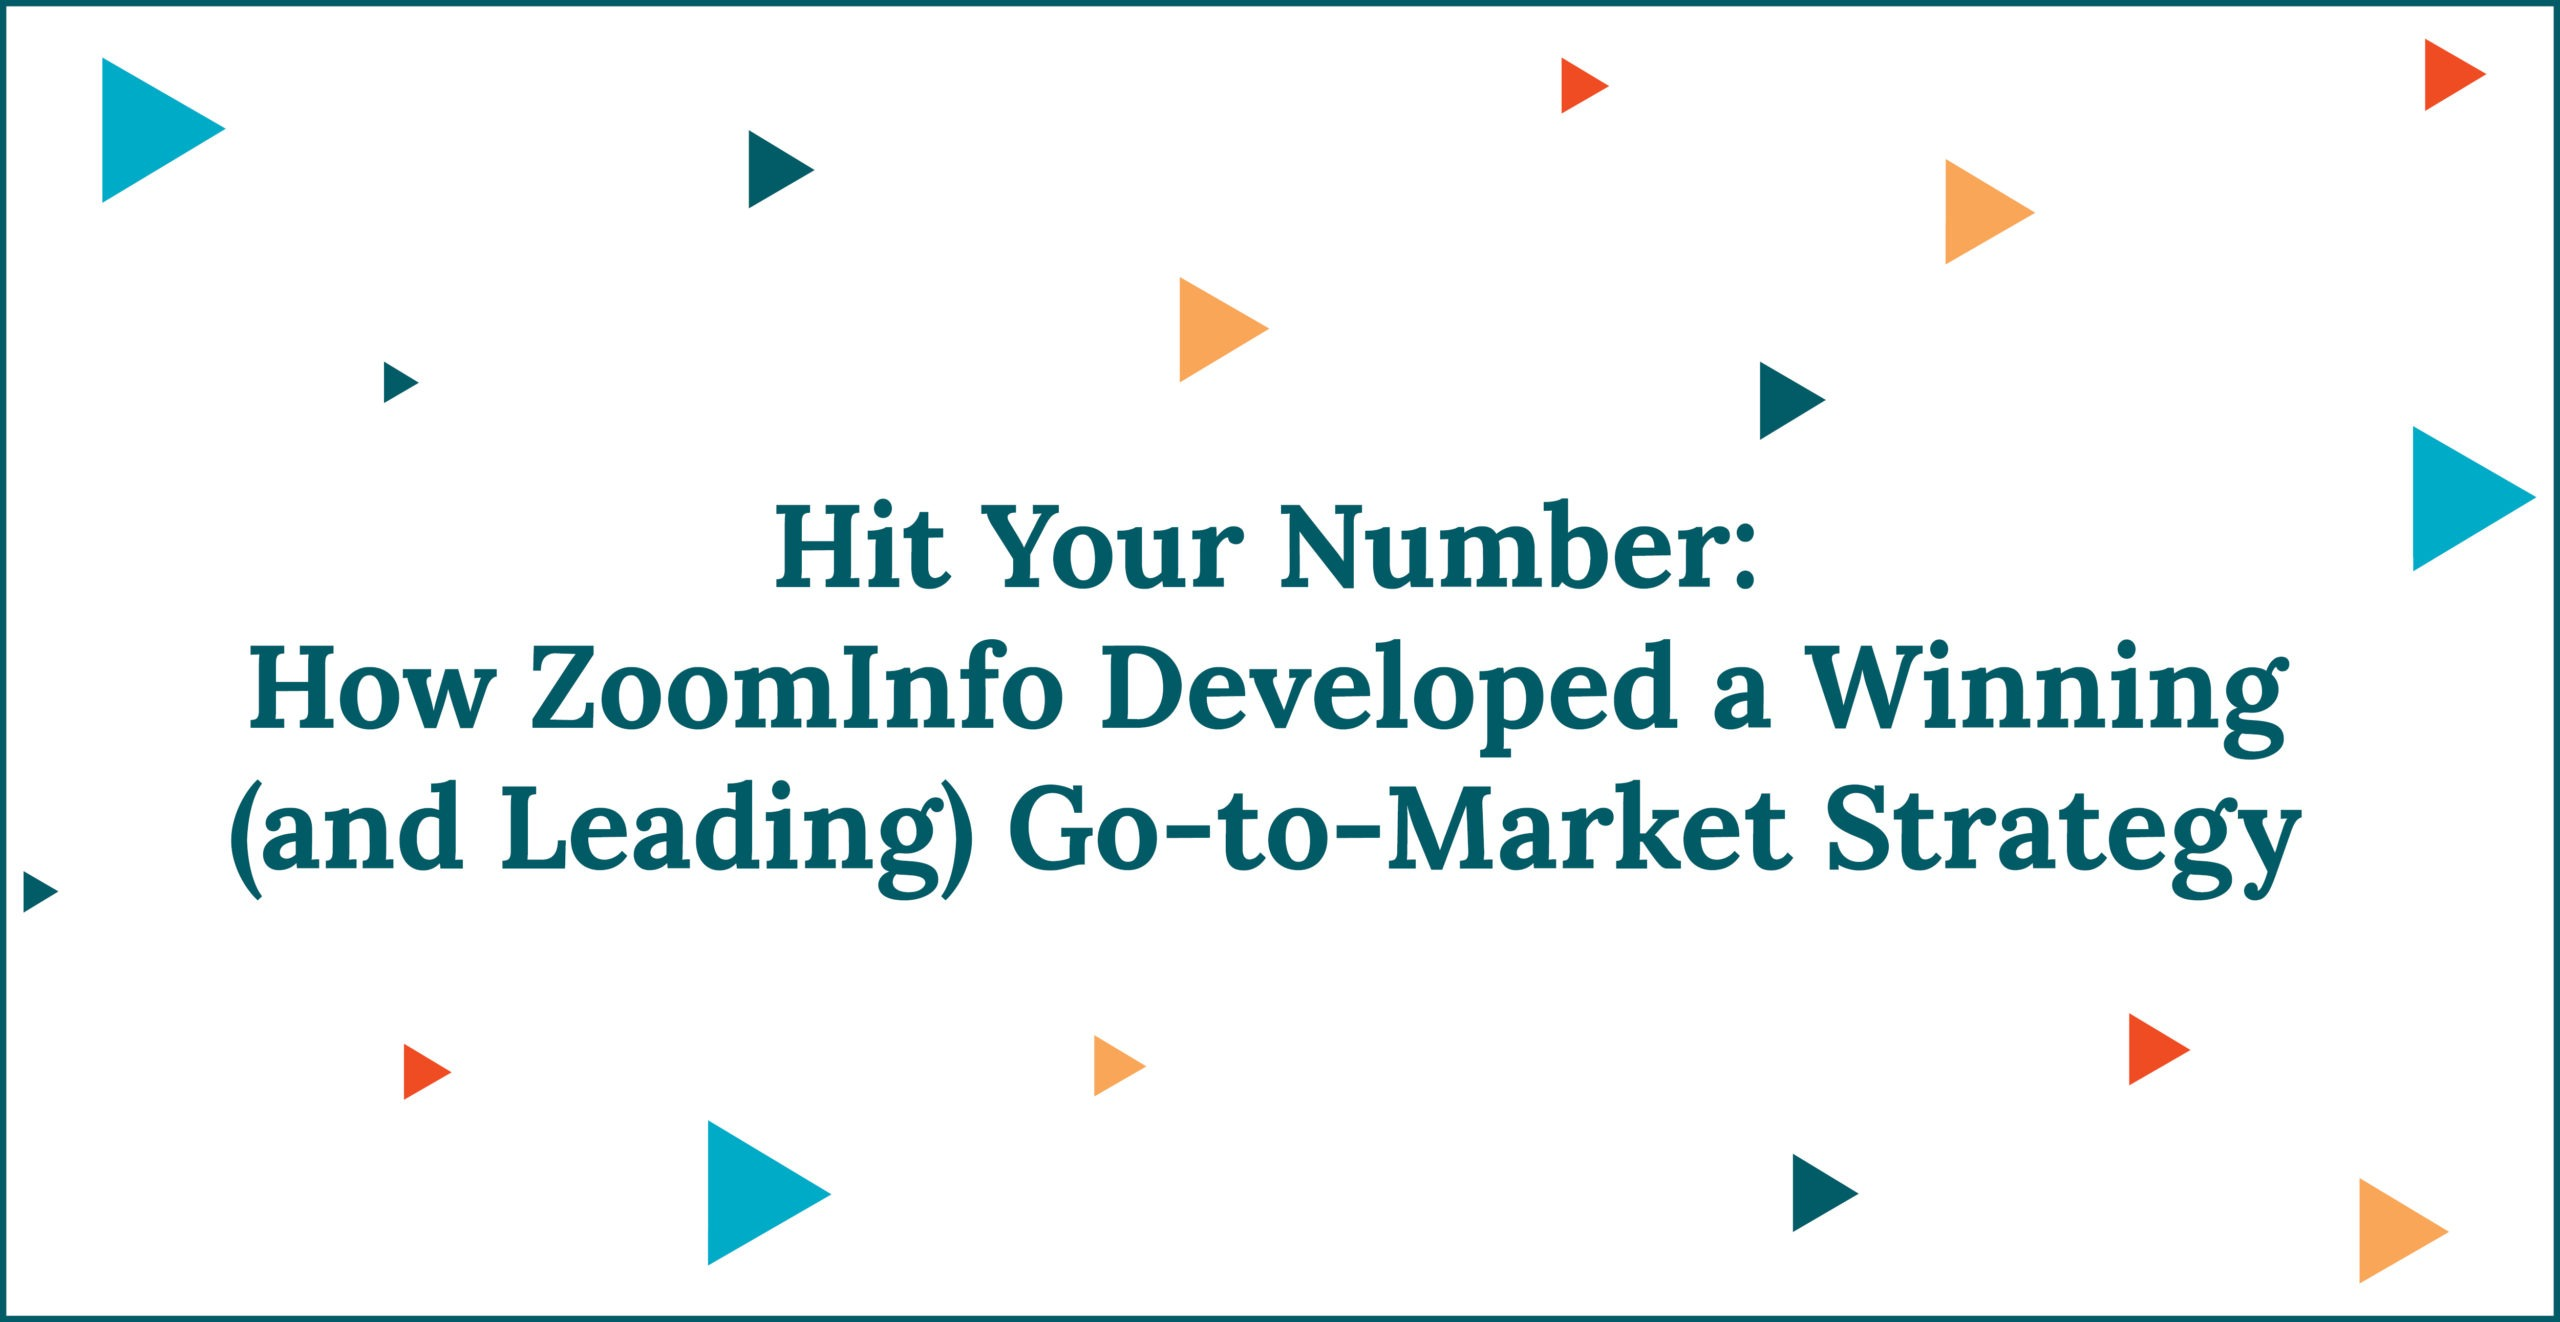 Hit Your Number: How ZoomInfo Developed a Winning (and Leading) Go-to-Market Strategy